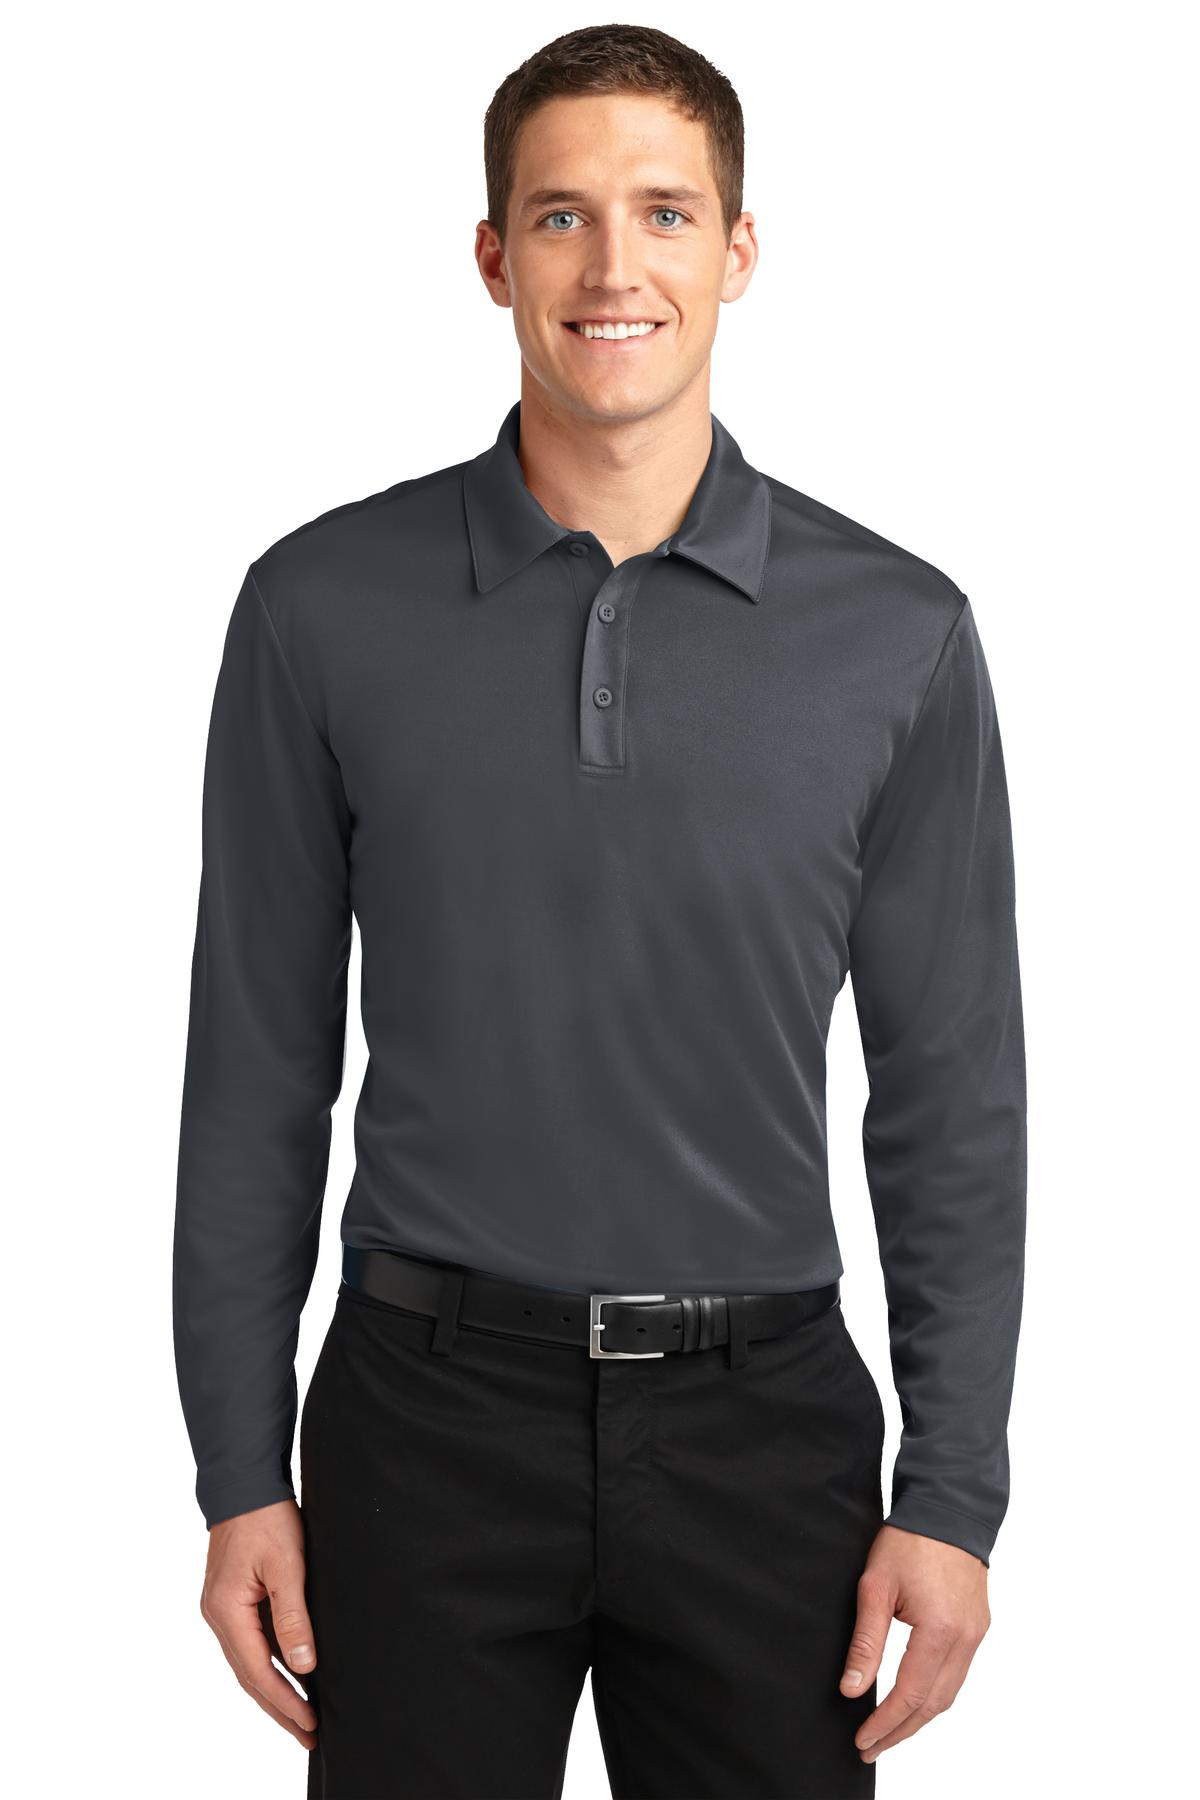 Estate Blue Port Authority Cotton Touch Performance Polo.